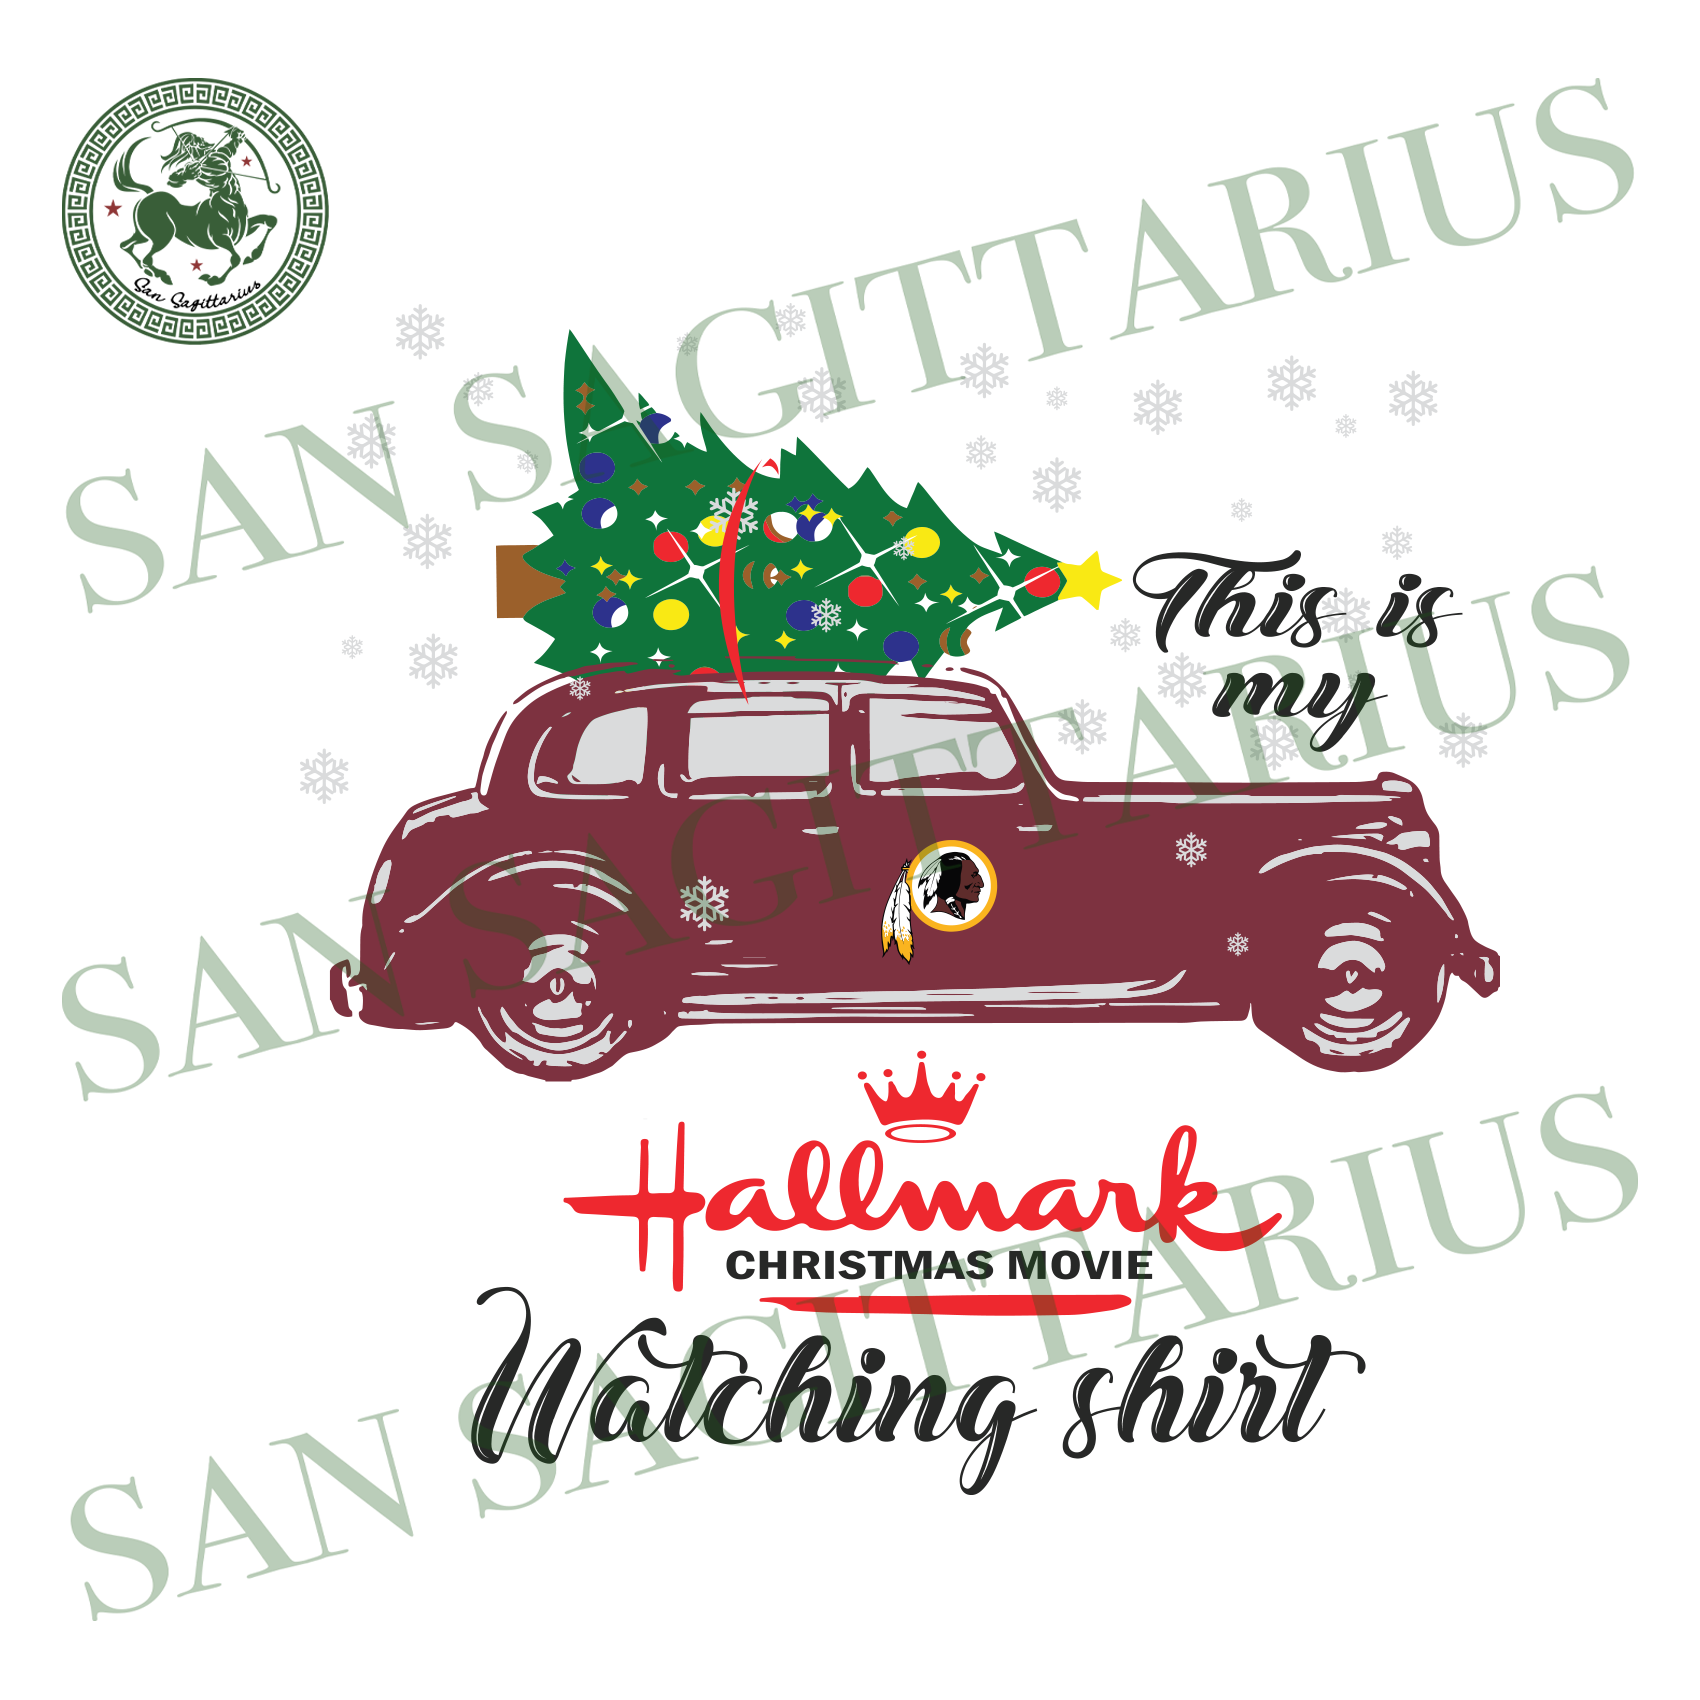 Washington NFL Football This Is My Hallmark Christmas Movie Watching Shirt, Sport Svg, Christmas Svg, Washington NFL Sport Svg, Washington Redskins NFL Svg, Football Svg, Football Shirt